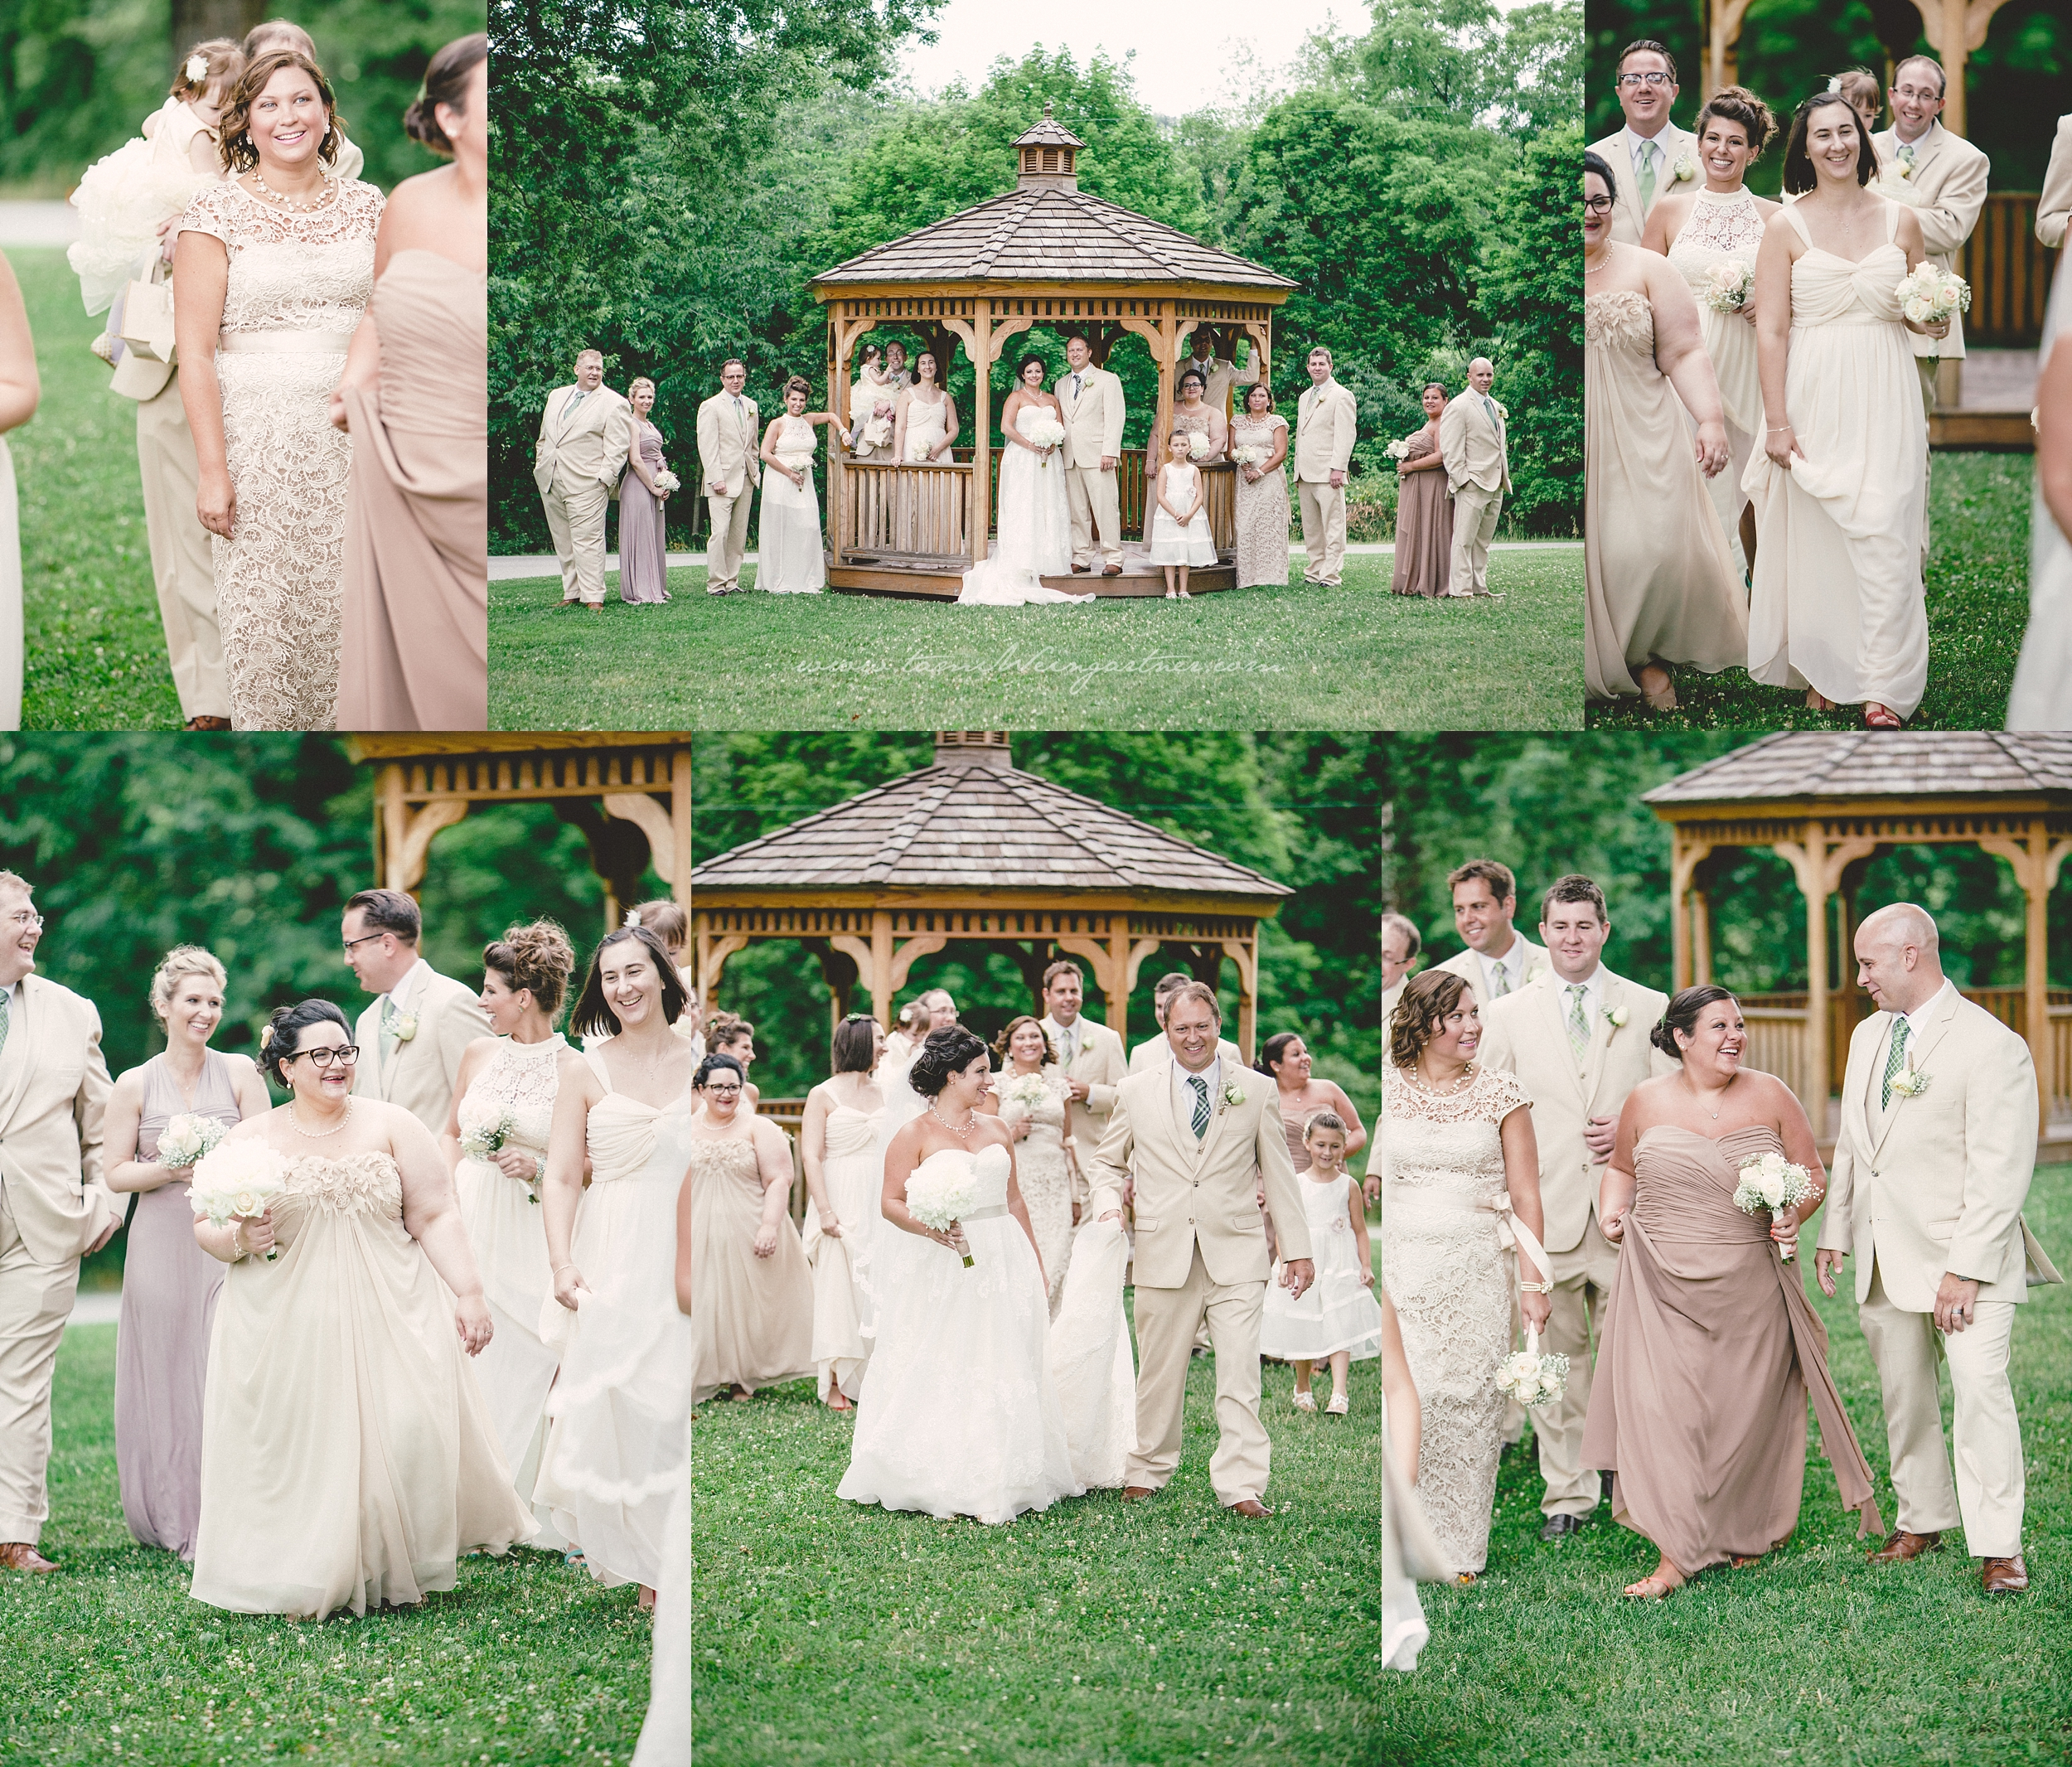 The gazebo and bridal party on the lawn at The Barn at Ligonier Valley